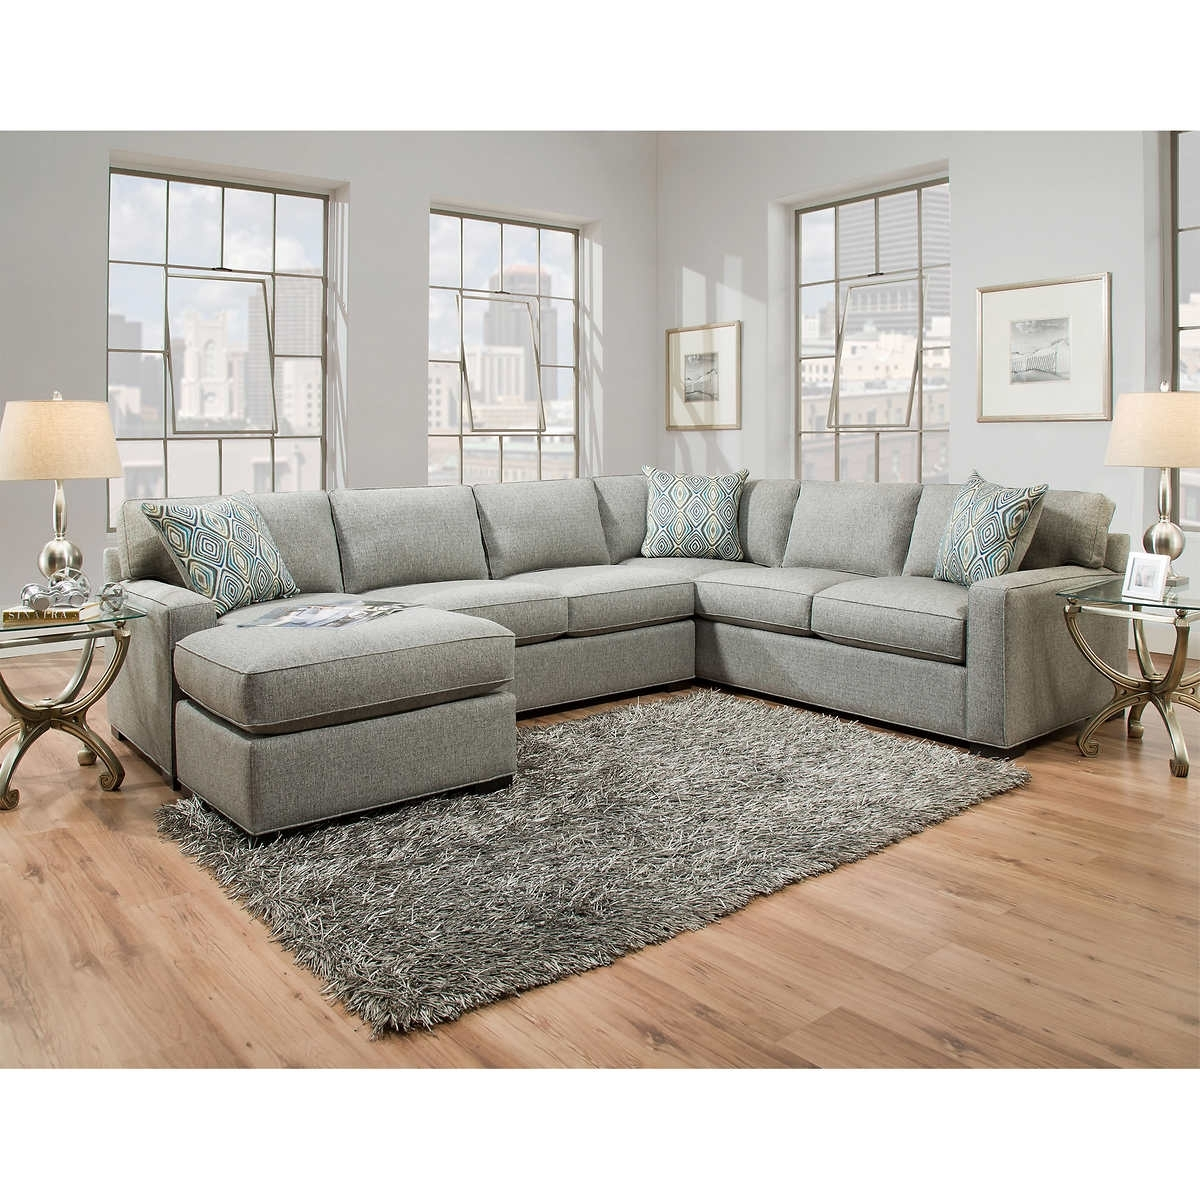 Fancy Costco Sofas Sectionals 91 In Sectional Sofas Raleigh Nc With In Raleigh Nc Sectional Sofas (Image 7 of 10)